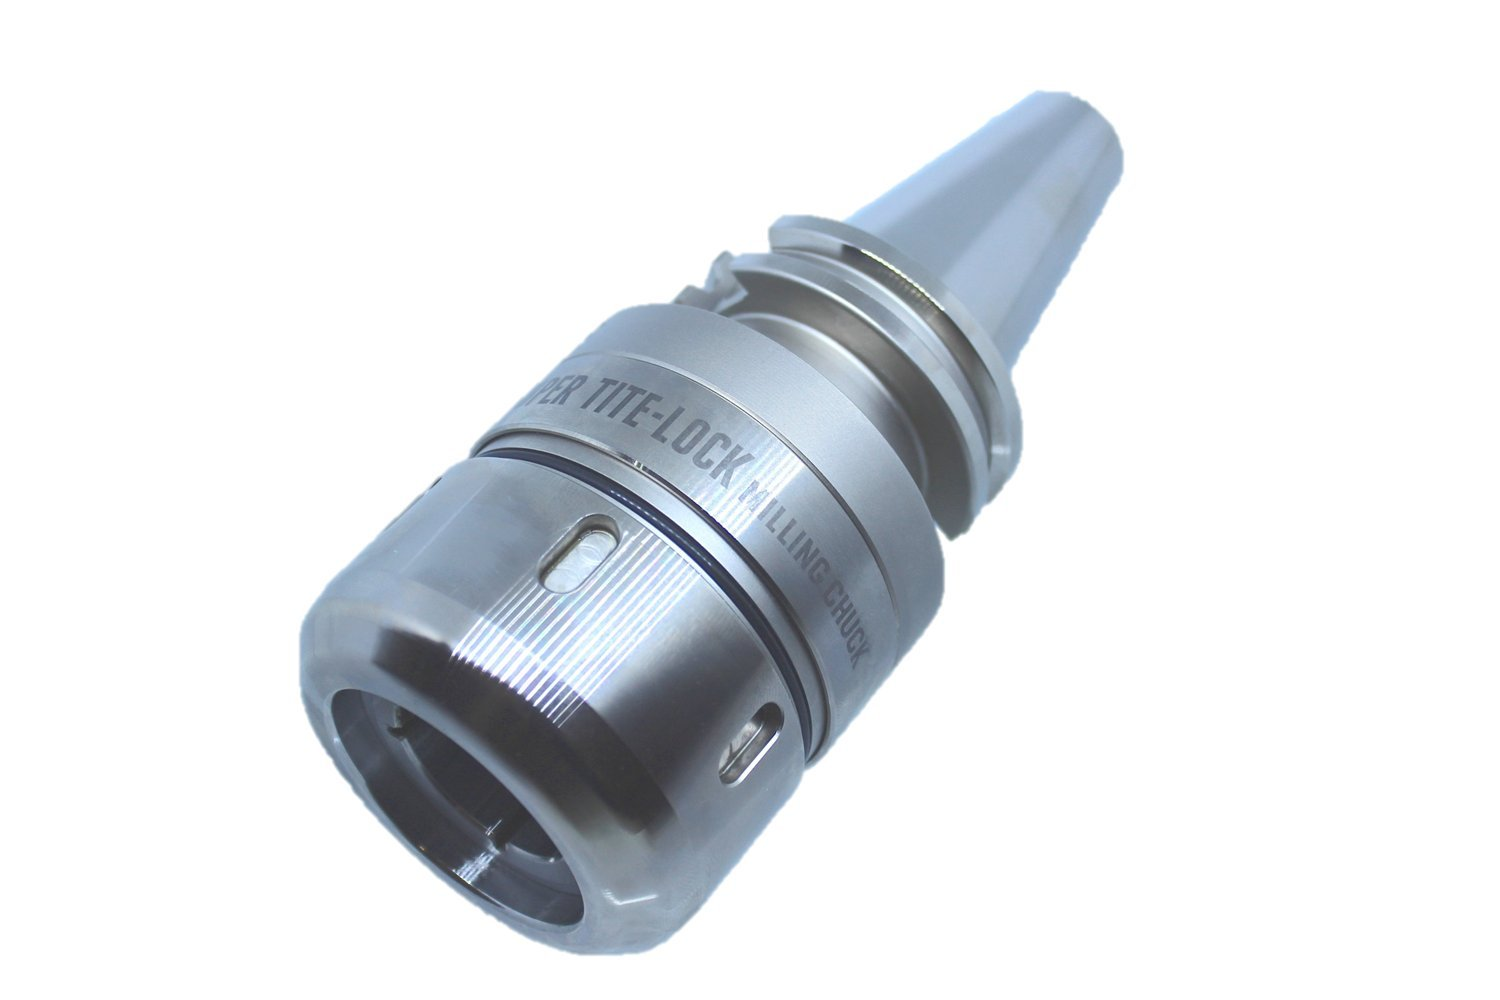 BT40-CT32S-120 - Super Tite-Lock Milling Chuck - 32mm ID, 120mm Projection Length - Center-Thru Coolant Sealed